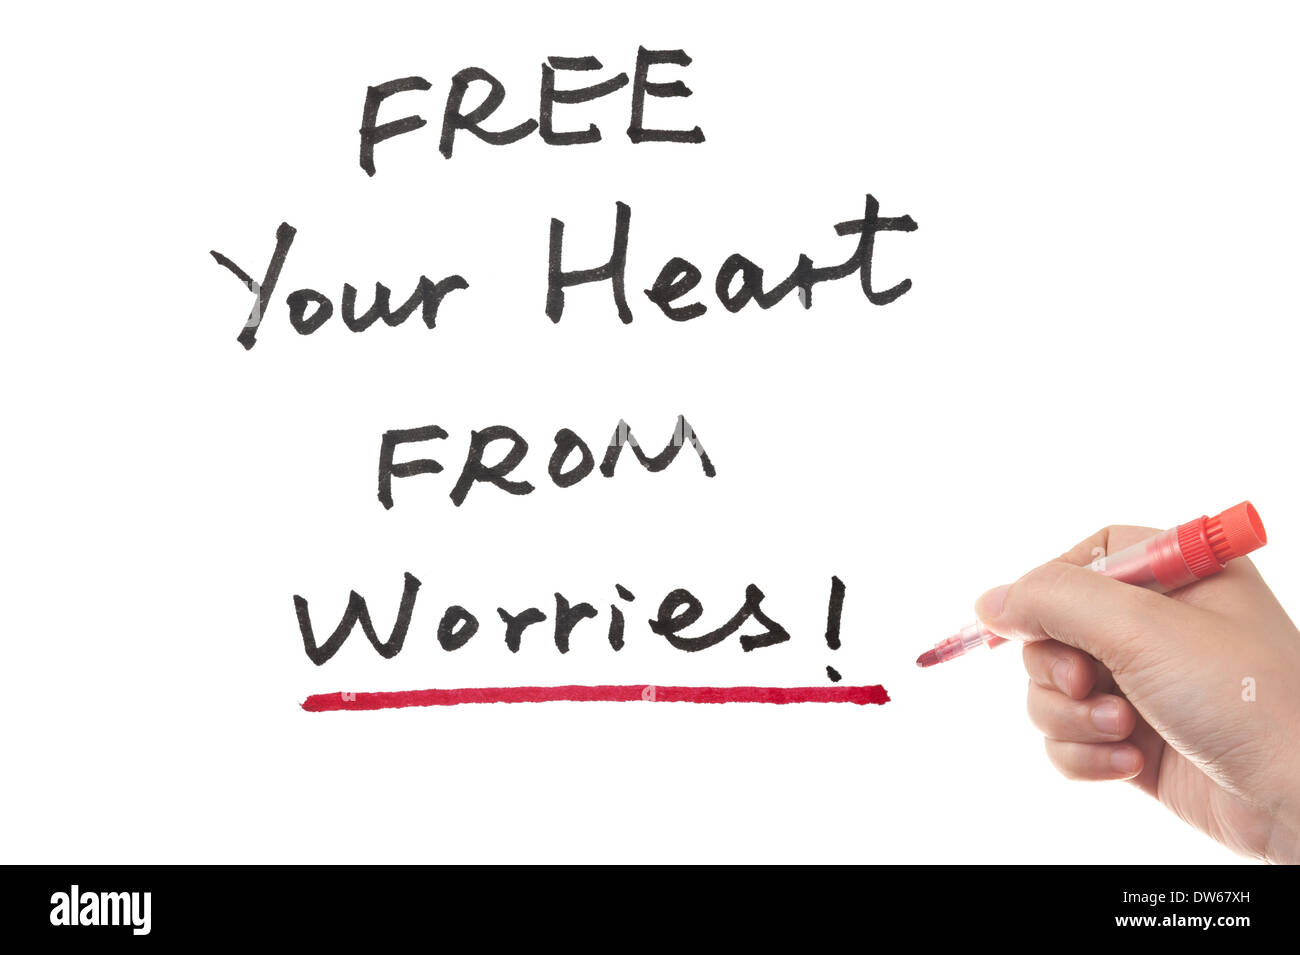 Free your heart from worries words written on white board - Stock Image